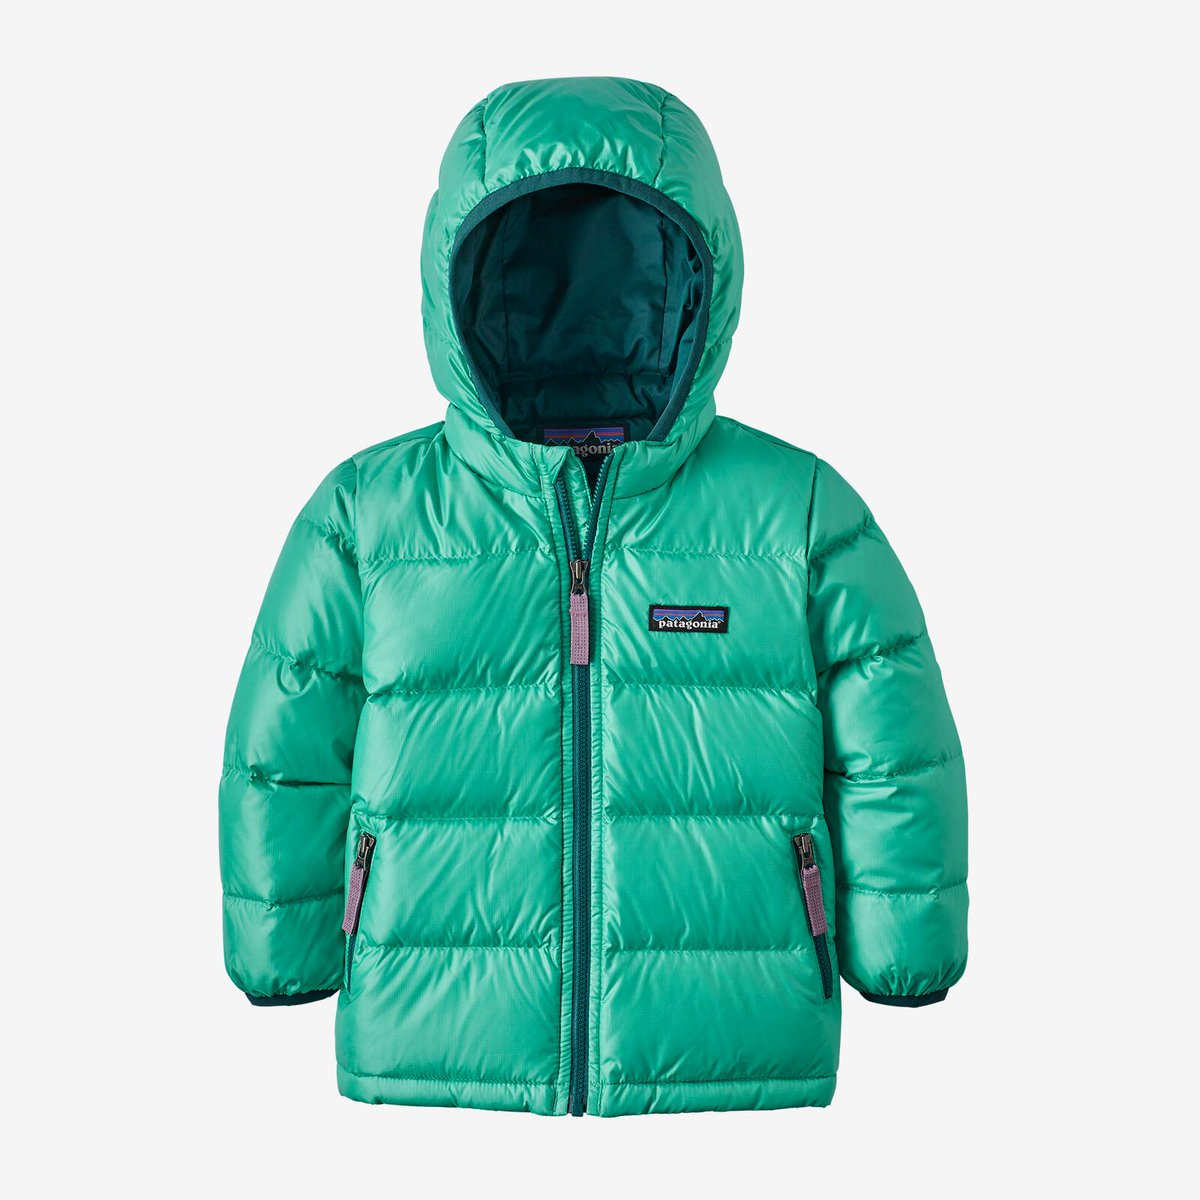 Up to 50% off @patagonia apparel, packs & gear for the fam: